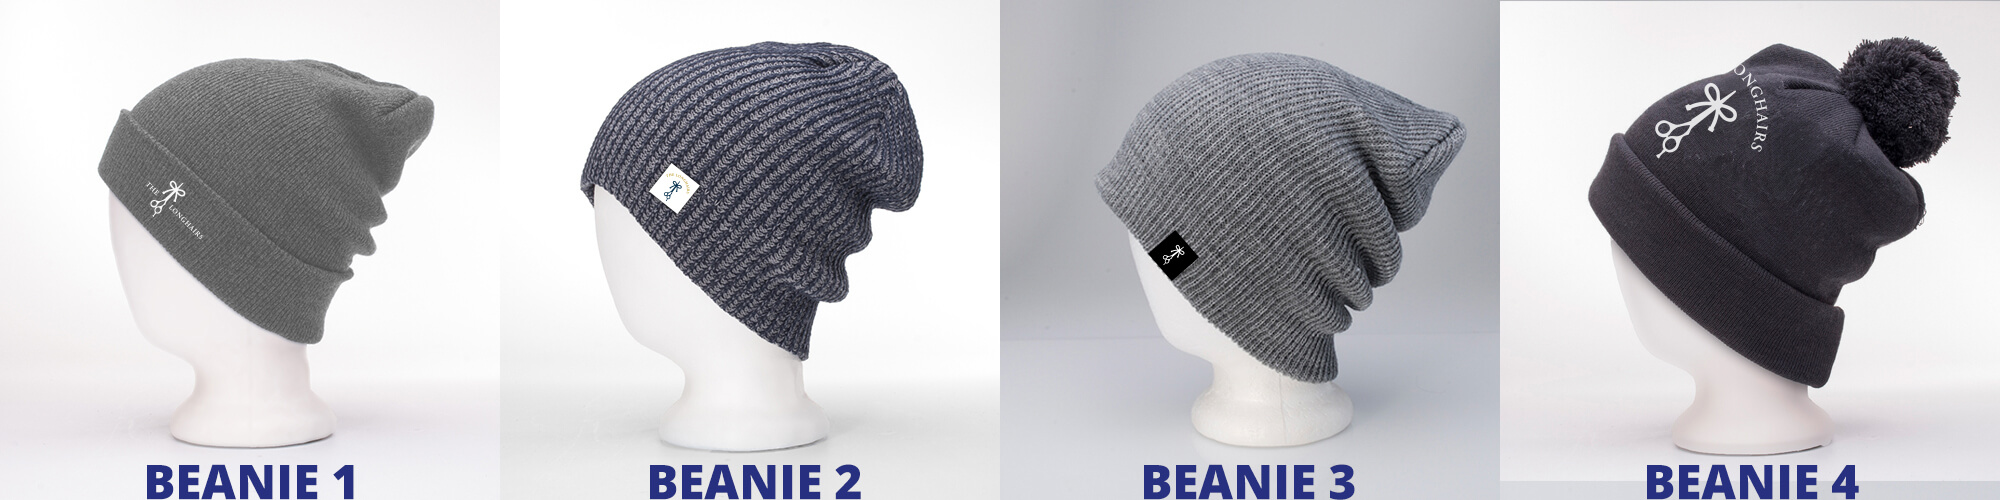 How To Wear A Beanie With Long Hair For Guys